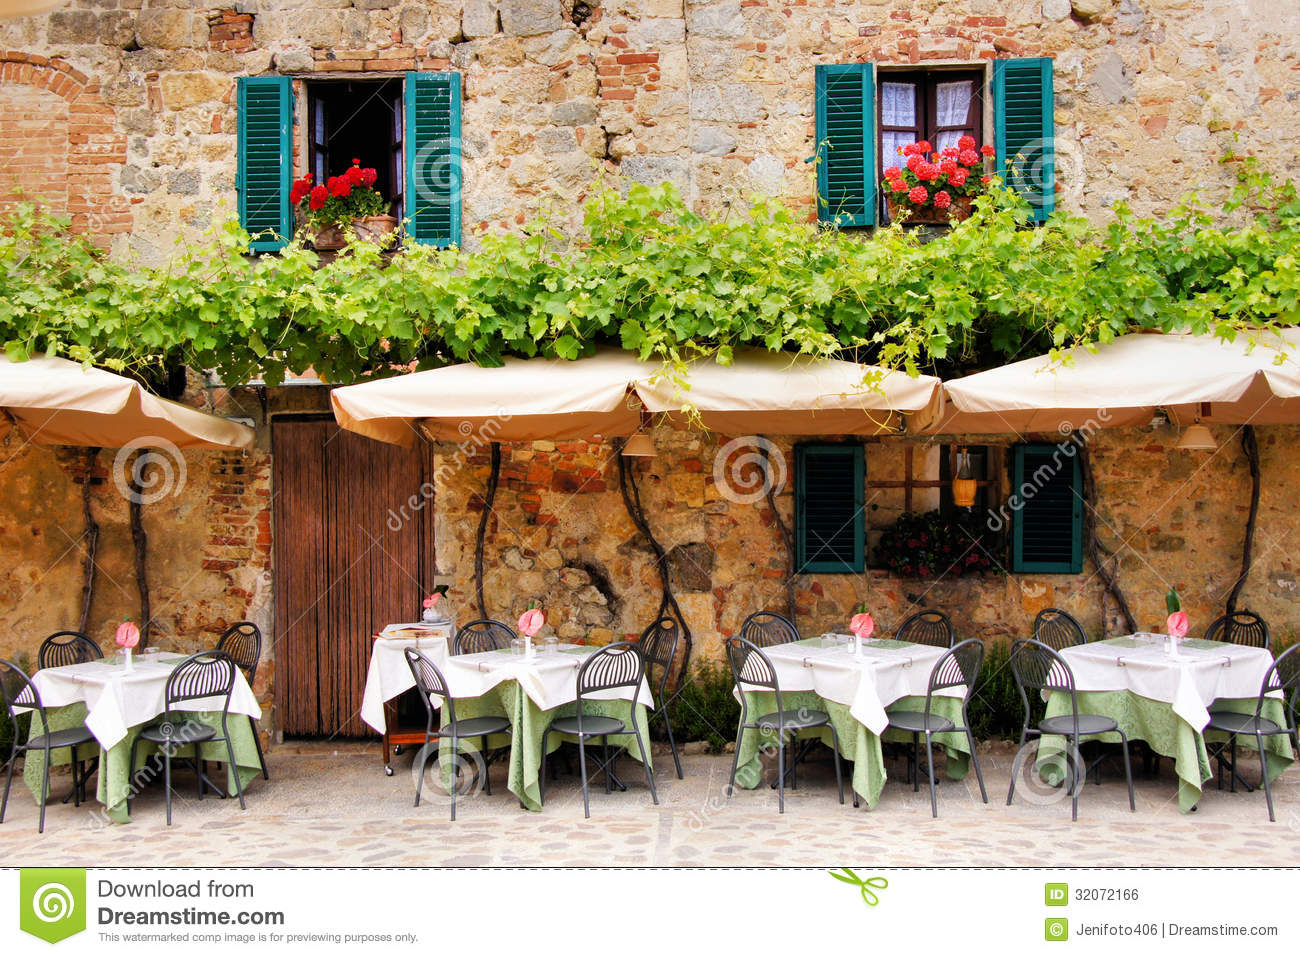 Quaint Cafe Royalty Free Stock Image Image 32072166 : quaint cafe tables chairs outside stone building tuscany italy 32072166 from www.dreamstime.com size 1300 x 957 jpeg 292kB